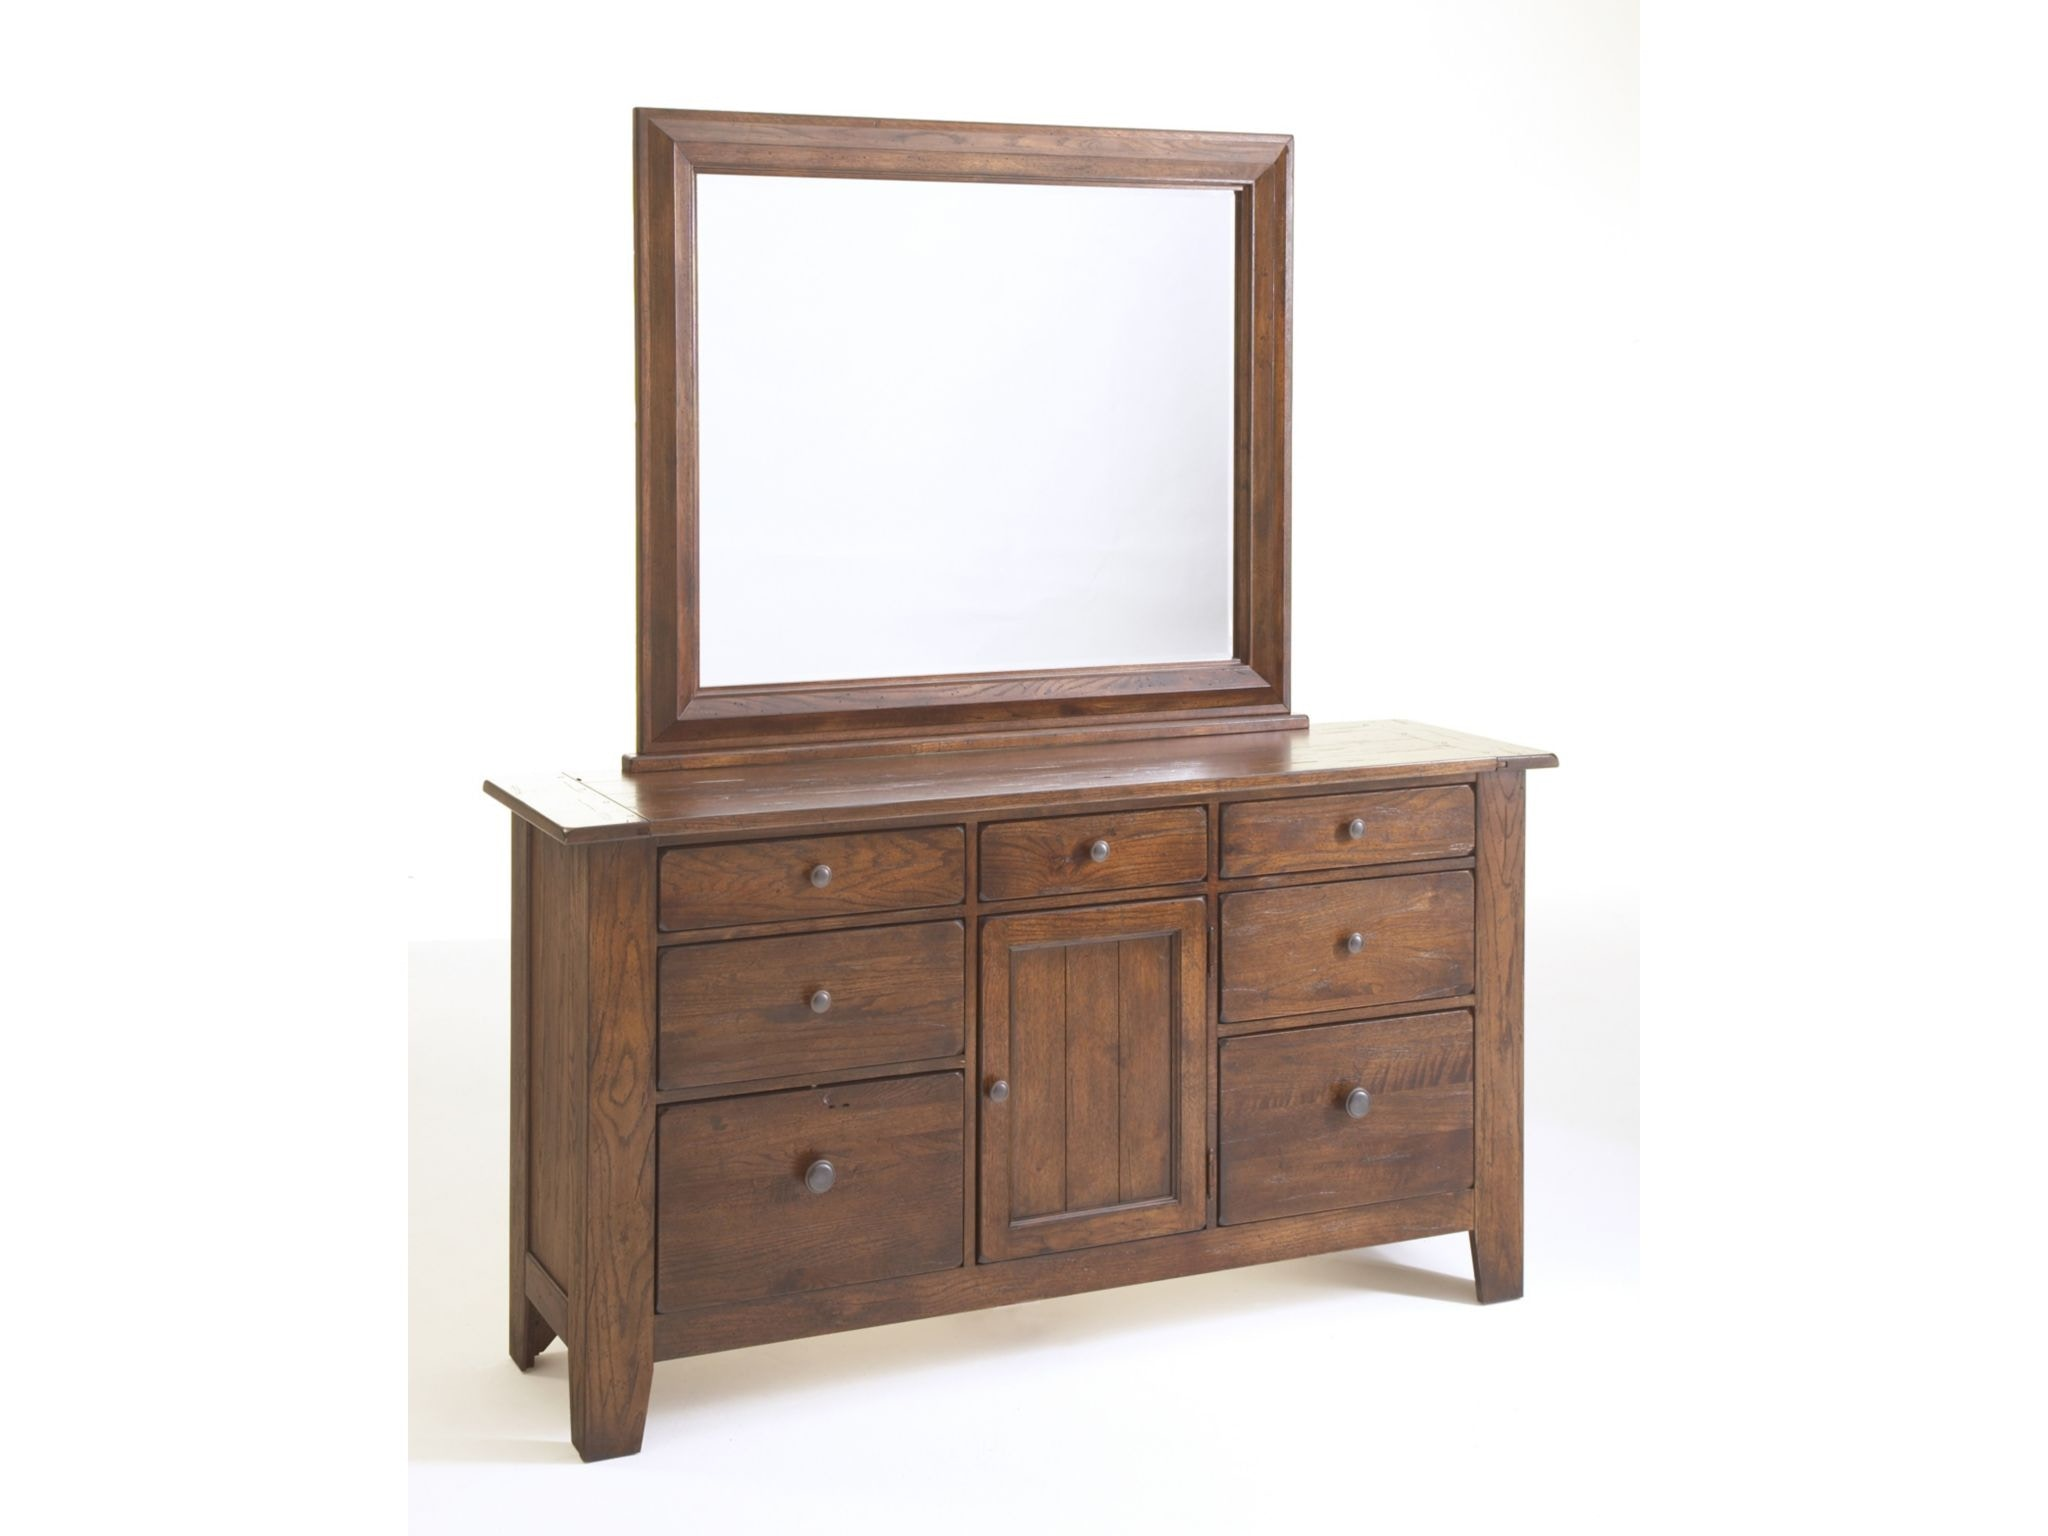 Broyhill Bedroom Attic Heirlooms Door Dresser, Rustic Oak Stain 4399 32V At Siker  Furniture